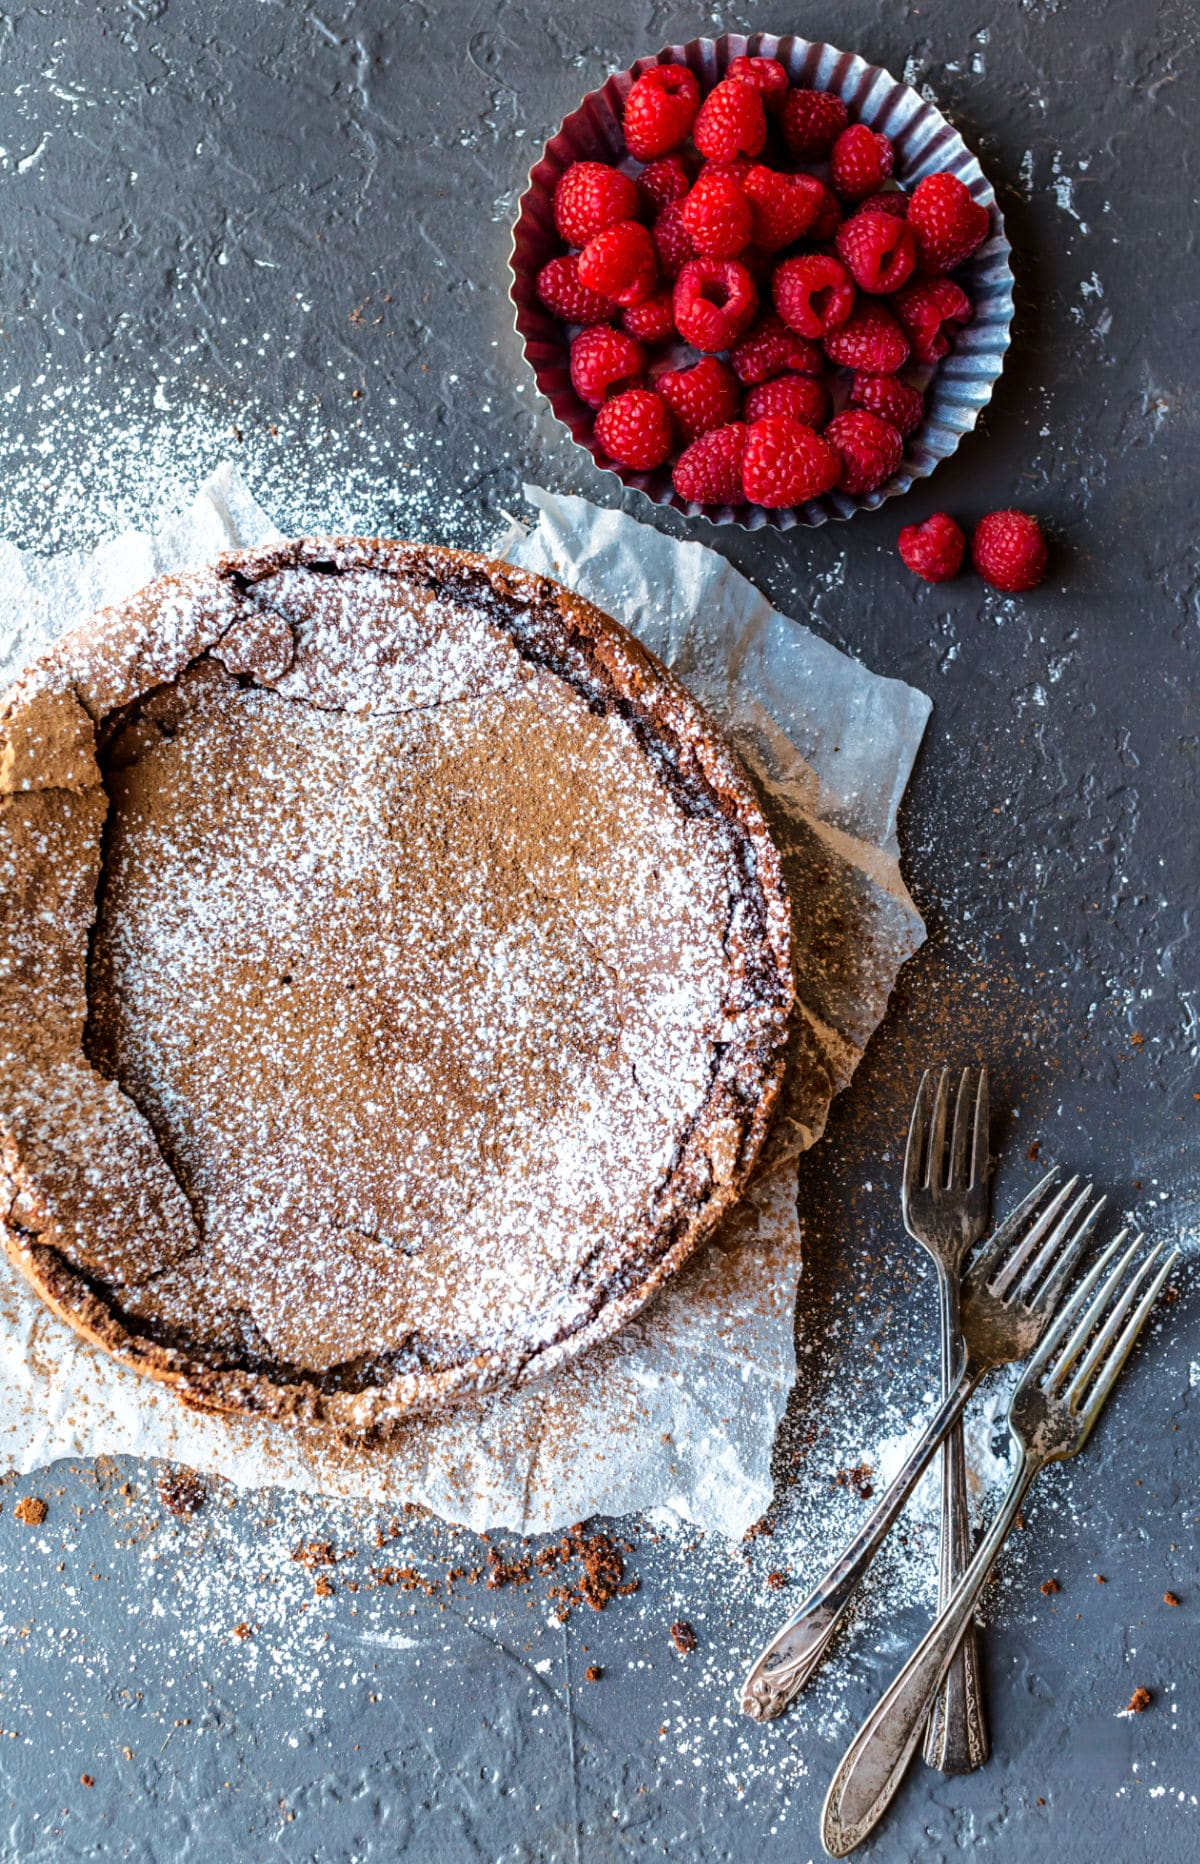 Flourless chocolate cake dusted with cocoa powder and powdered sugar.